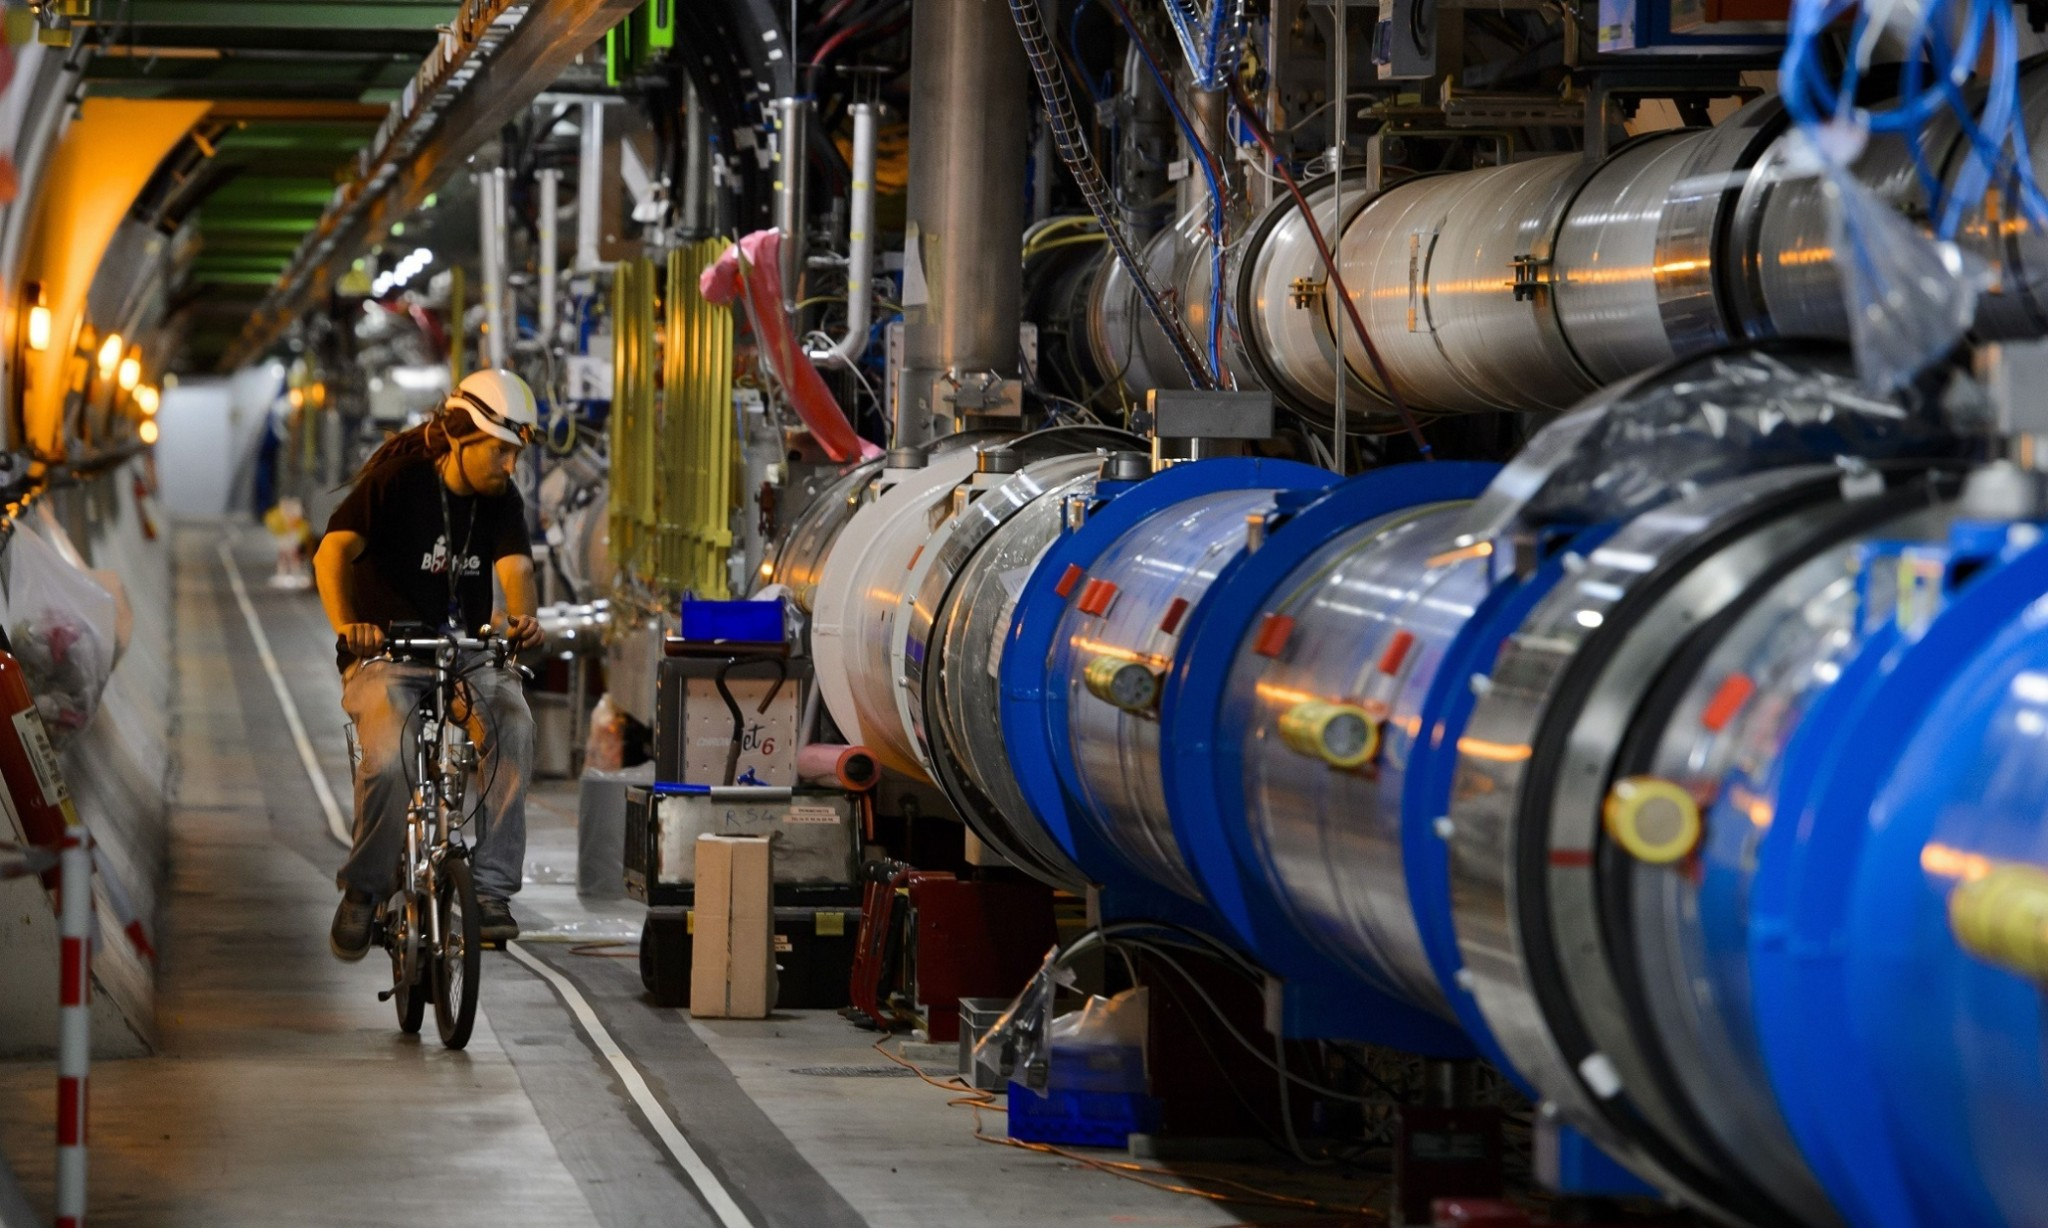 Two years of the Higgs boson